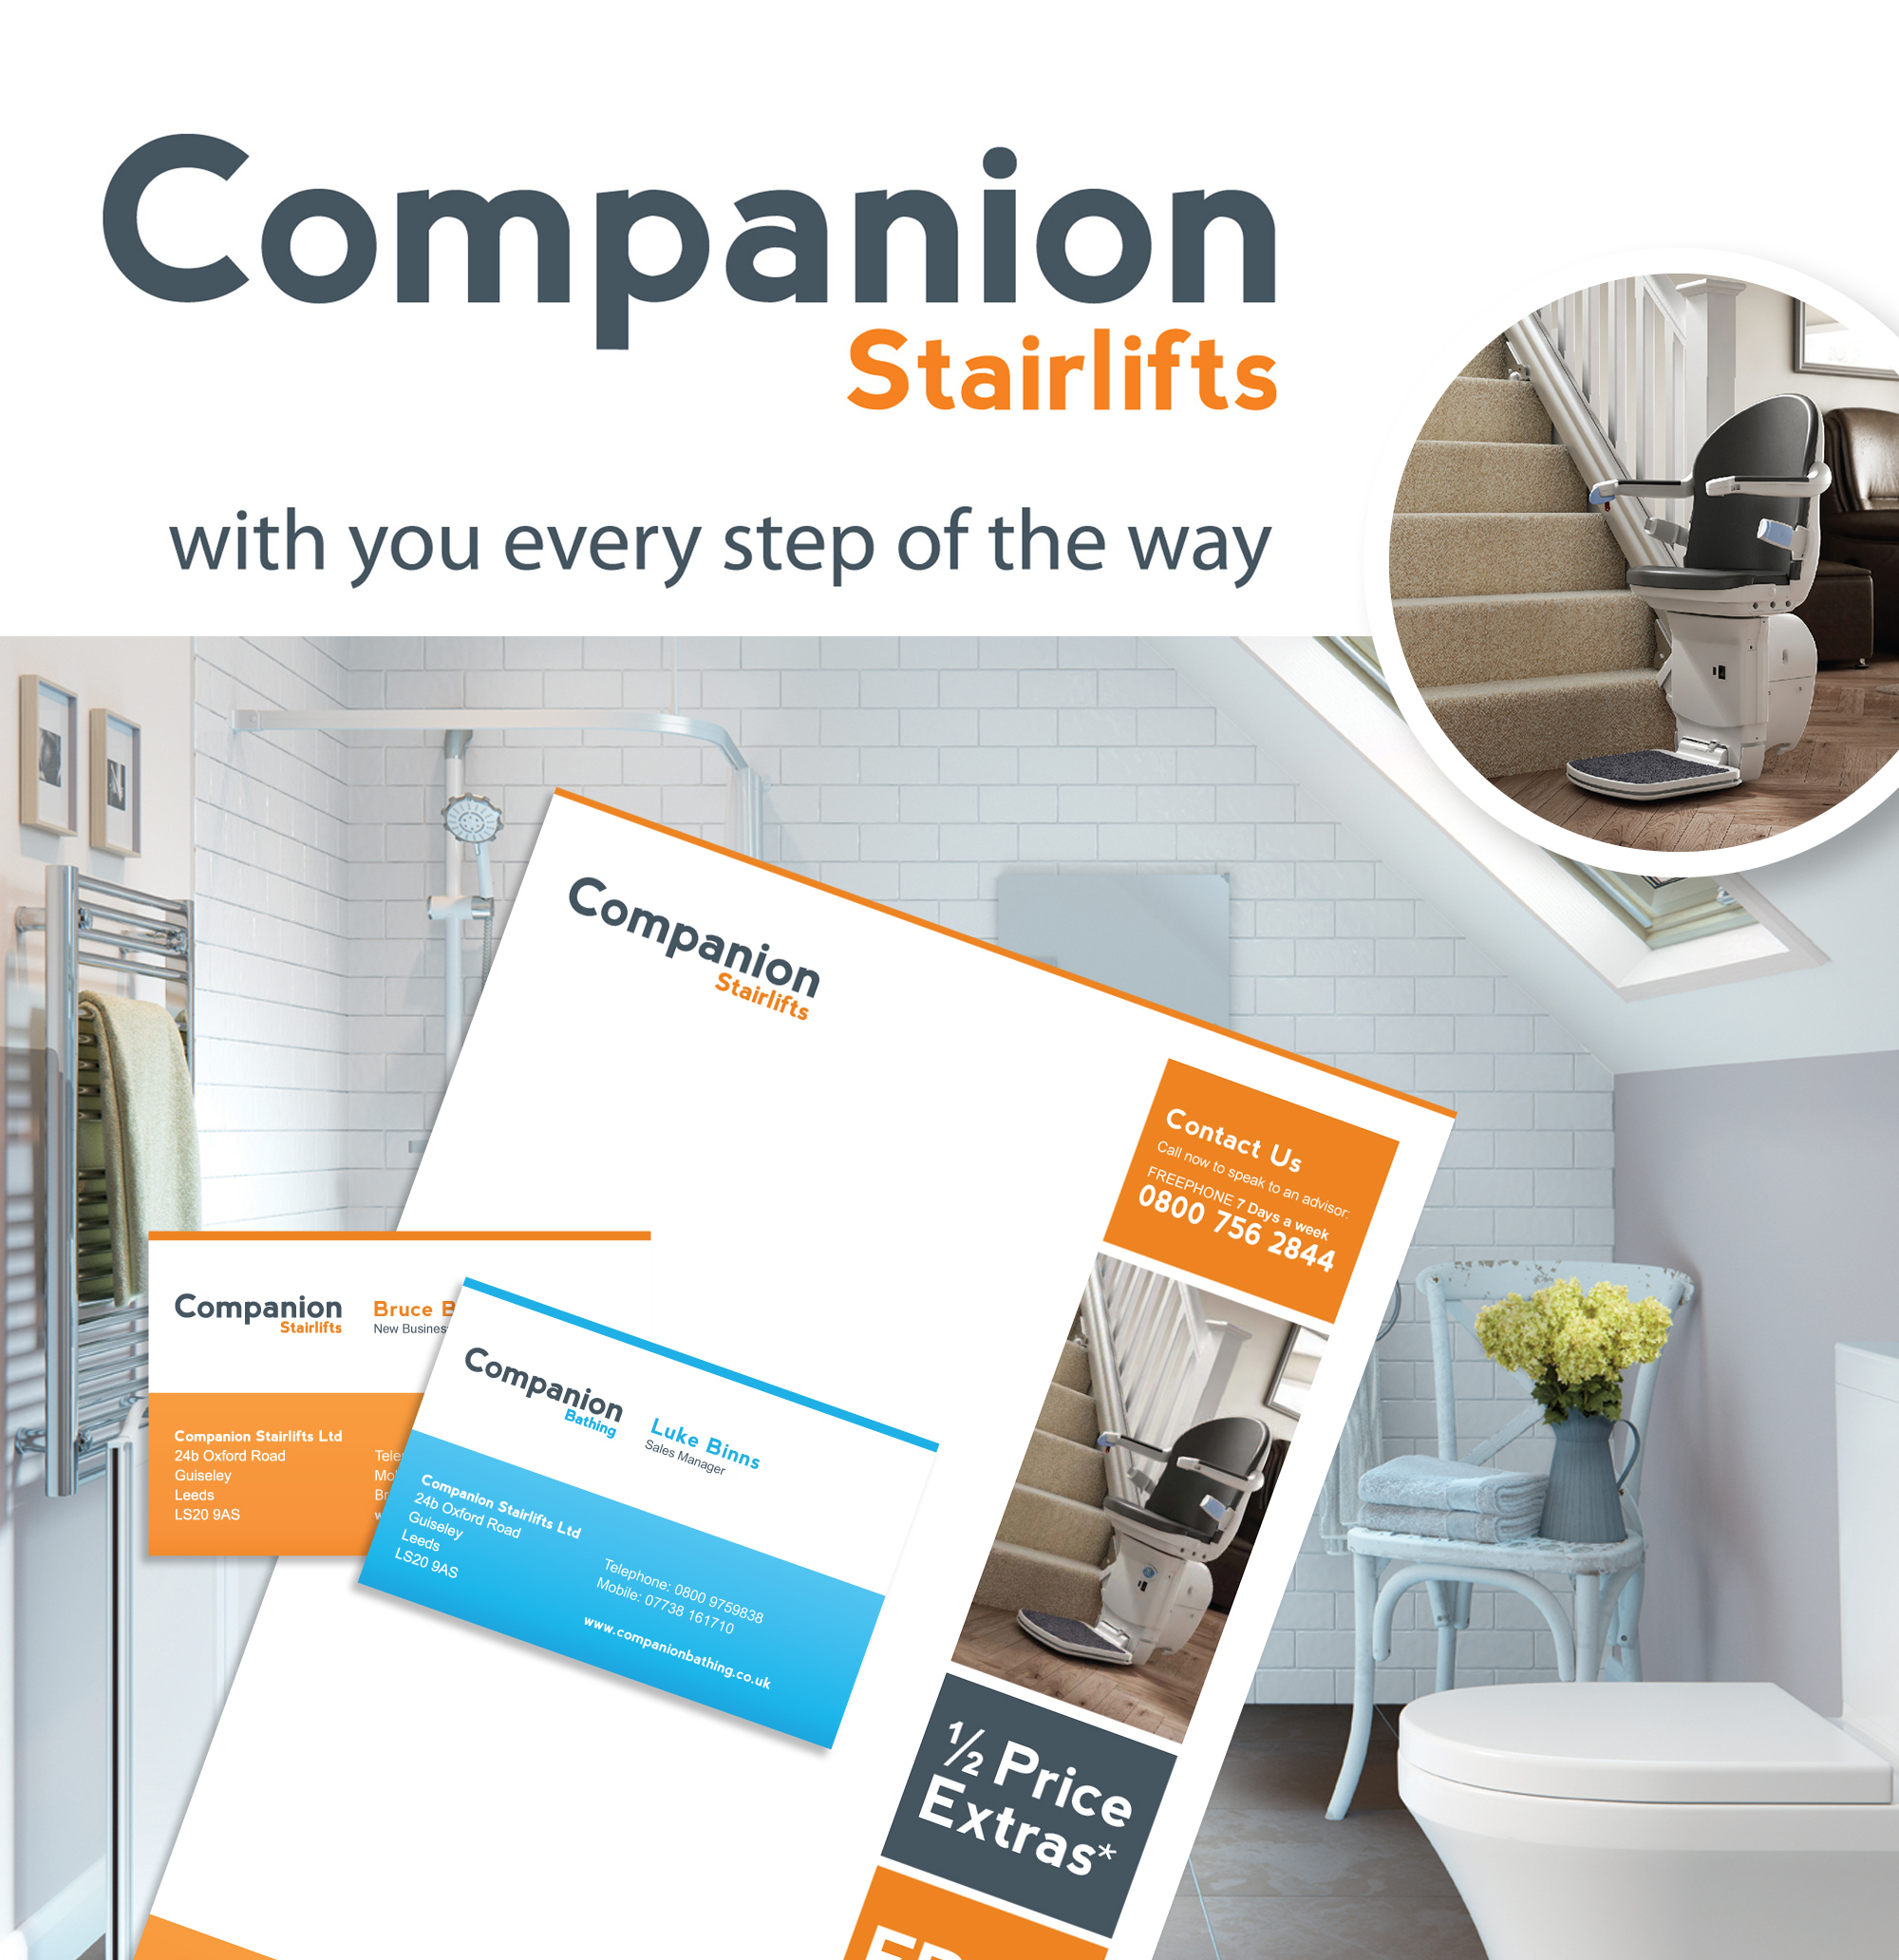 Rebranding Project for Companion Stairlifts and Bathing